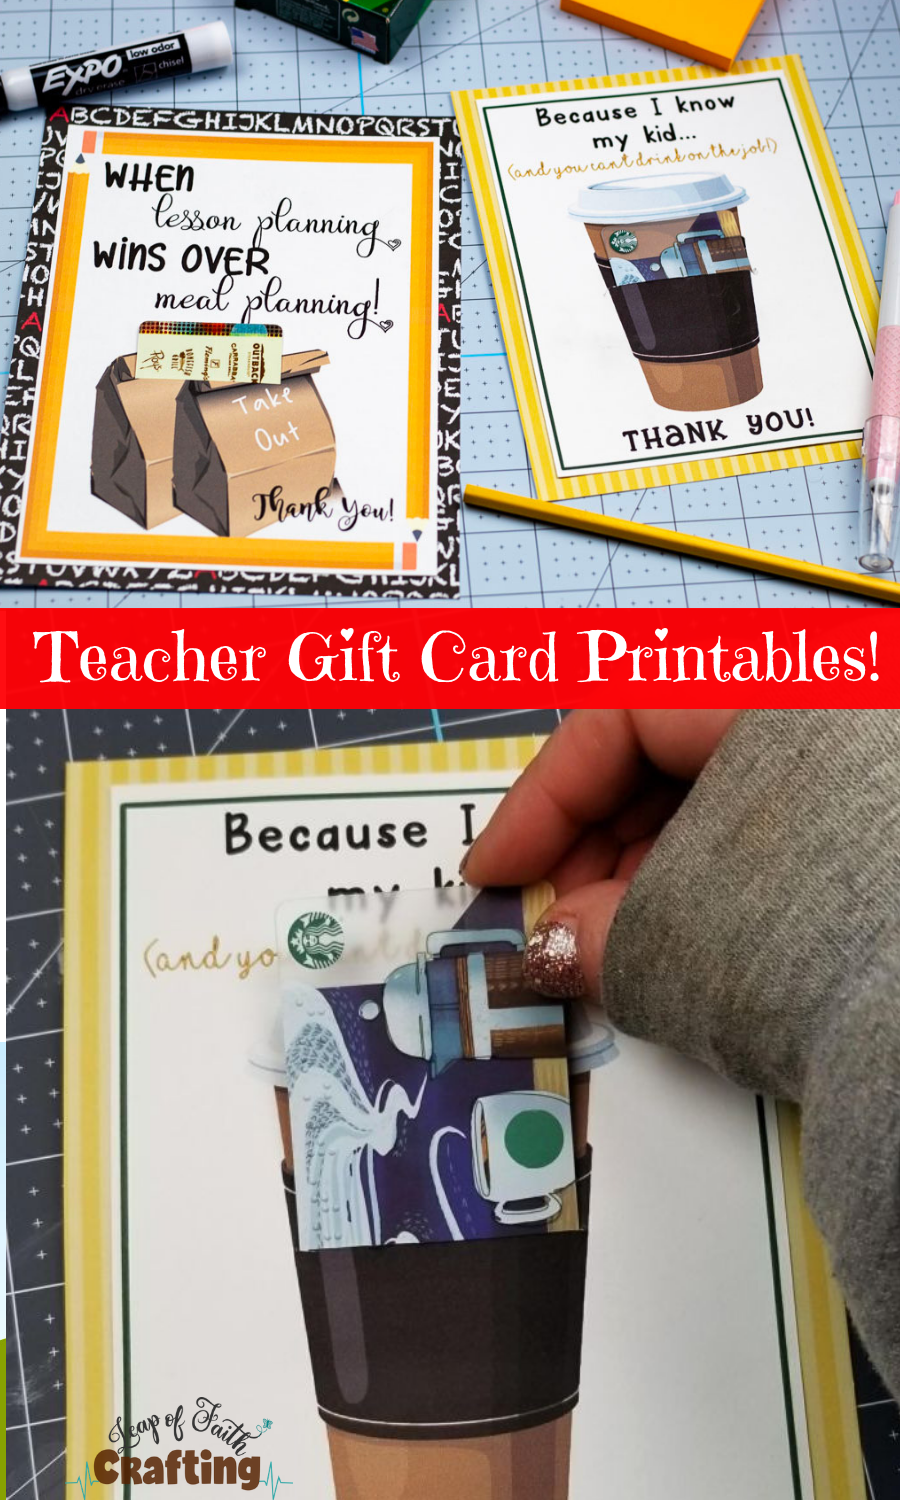 image regarding Printable Teacher Appreciation Card called Printable Instructor Appreciation Playing cards: Only Incorporate a Reward Card